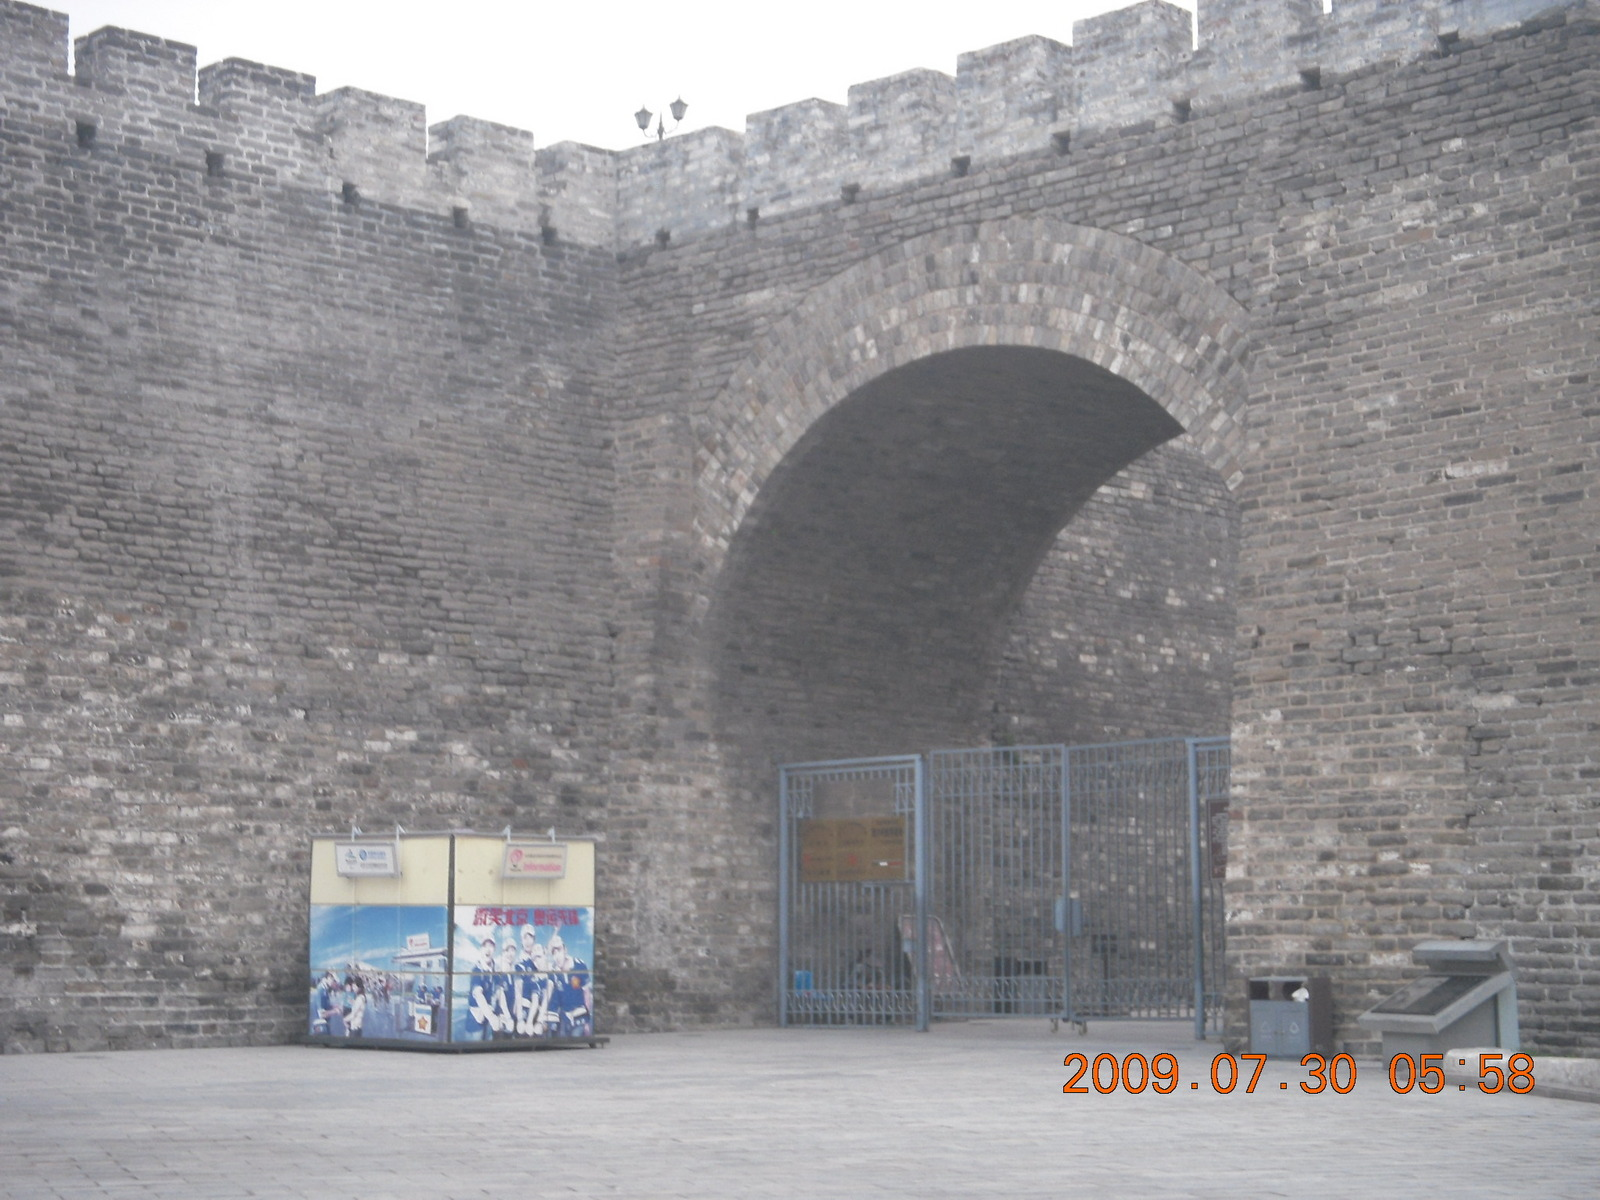 China eclipse - Beijing morning run - Ming Wall